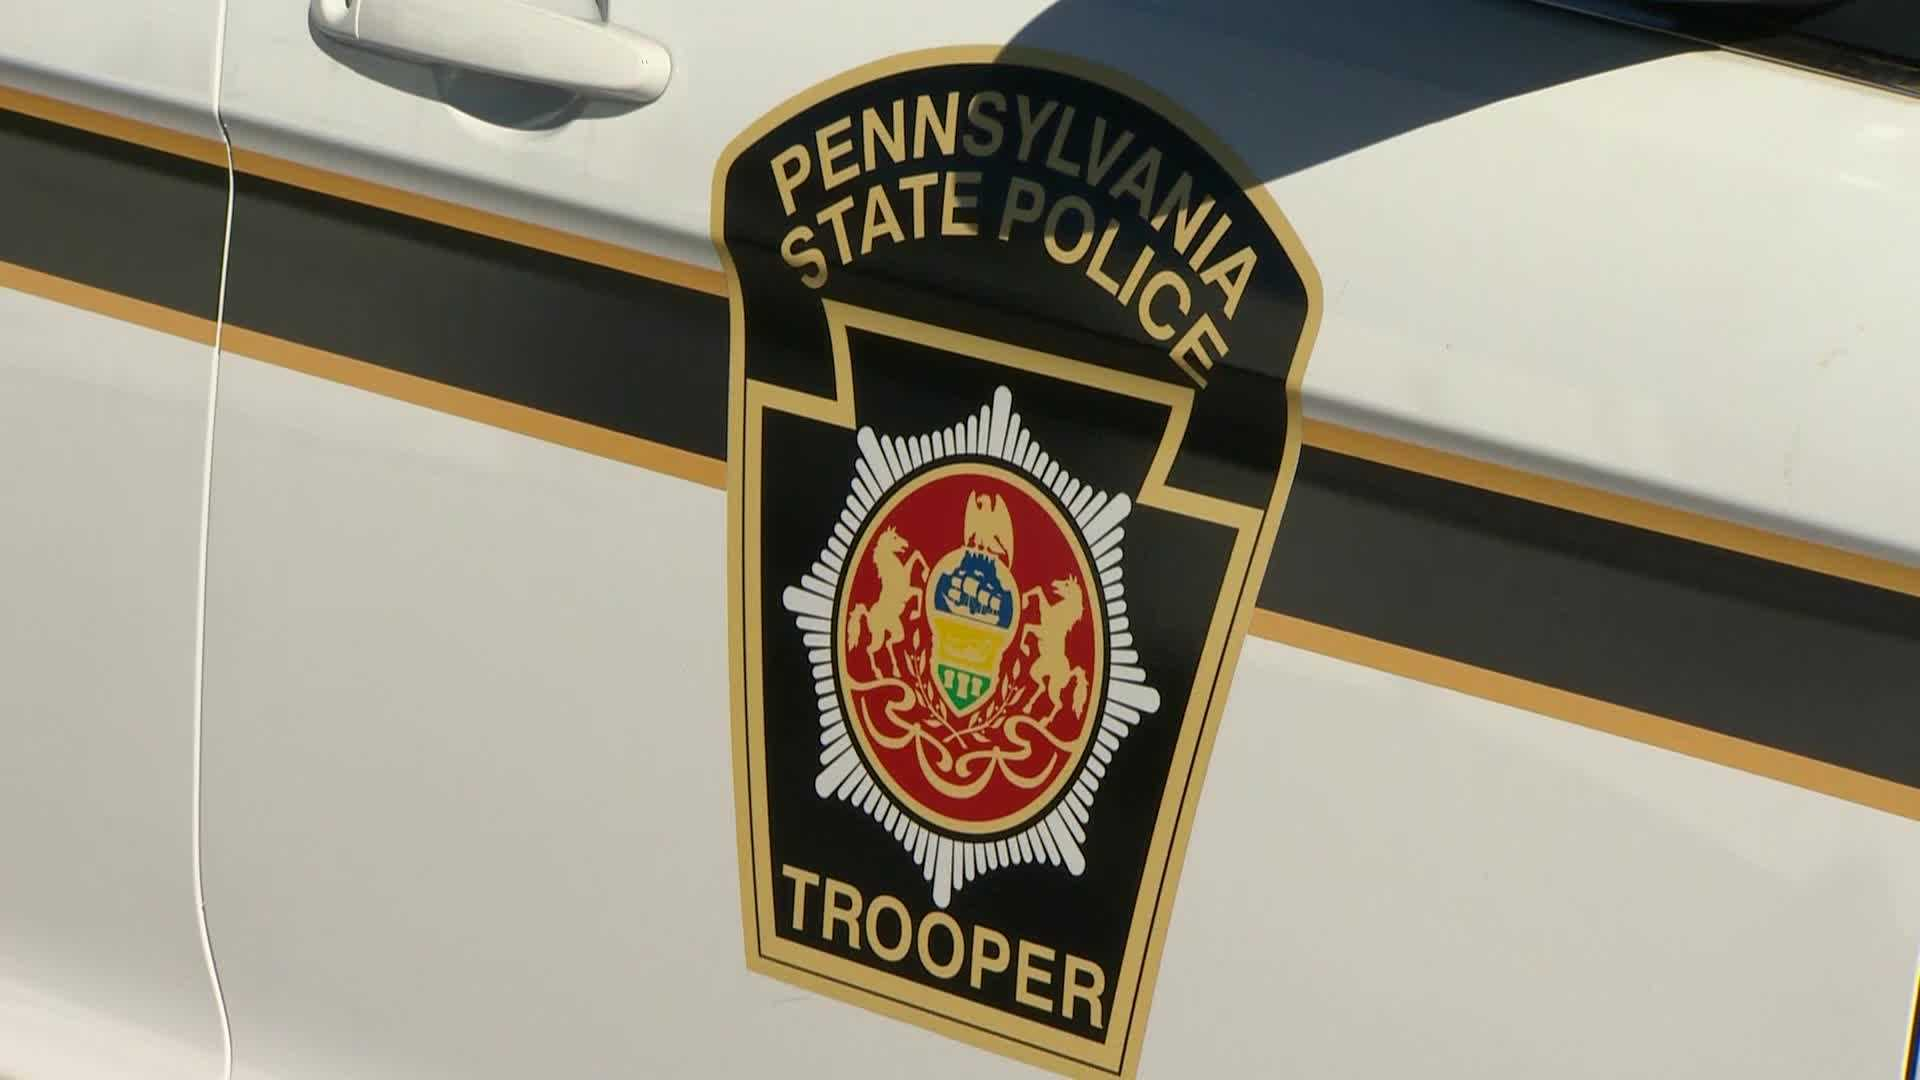 Pennsylvania State Police logo on car